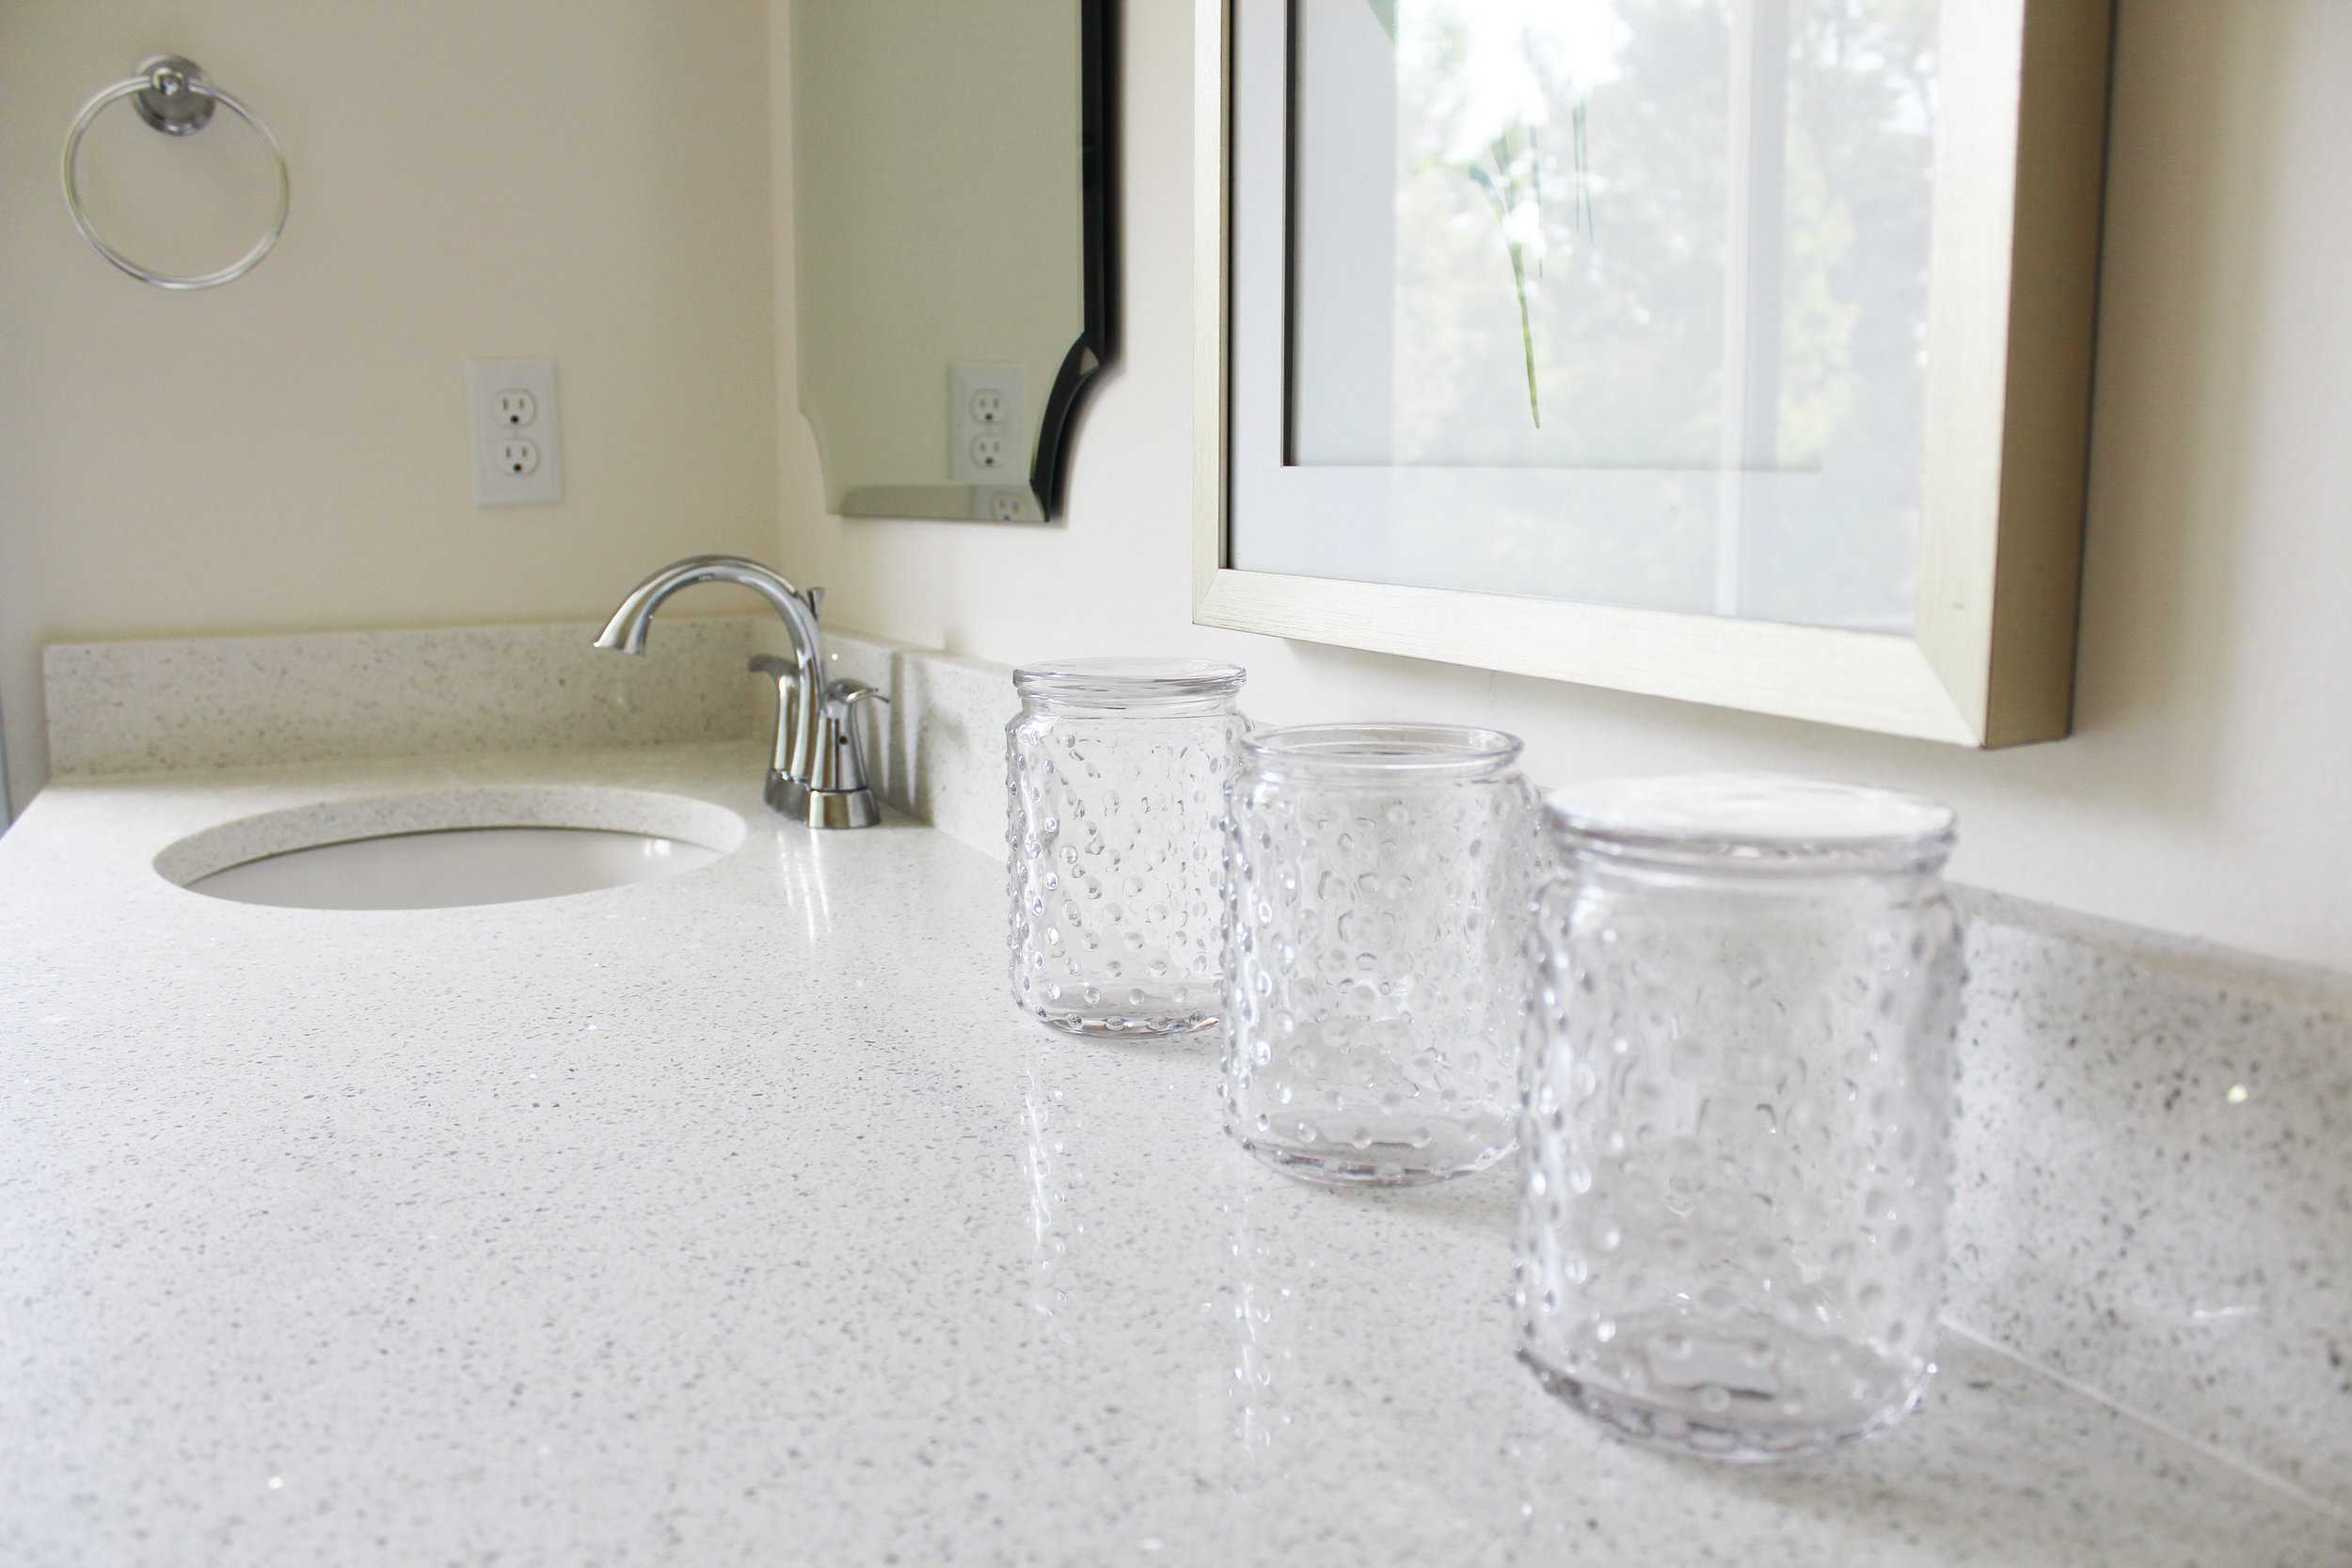 Sparkling White Quartz as featured on HGTV in our  #CapeChaletReno  project.